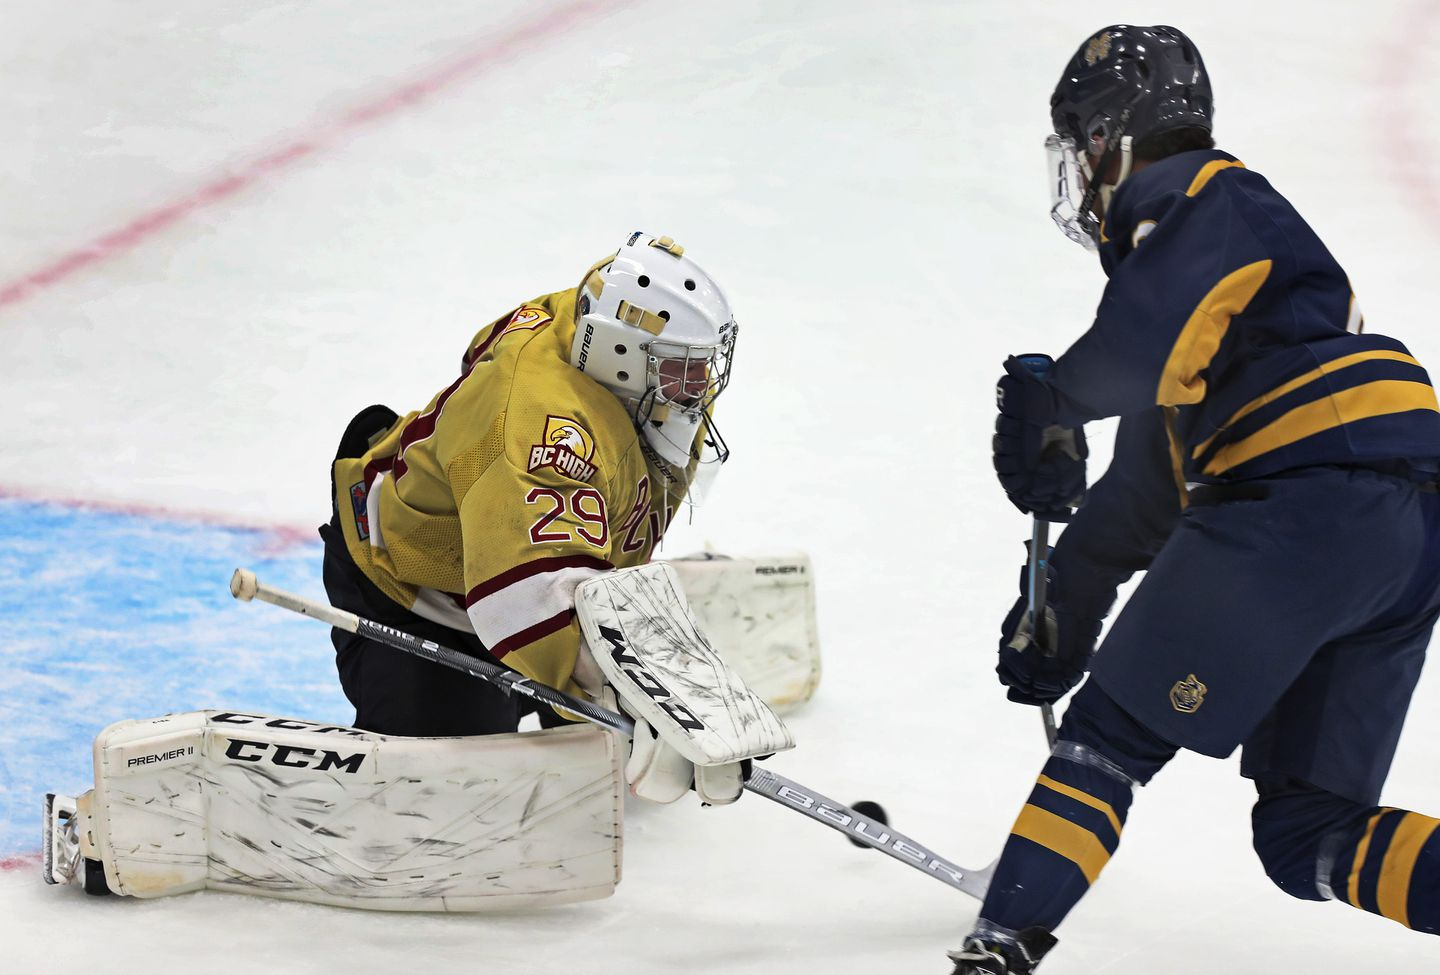 Malden Catholic And Bc High Skate To A 4 4 Tie The Boston Globe